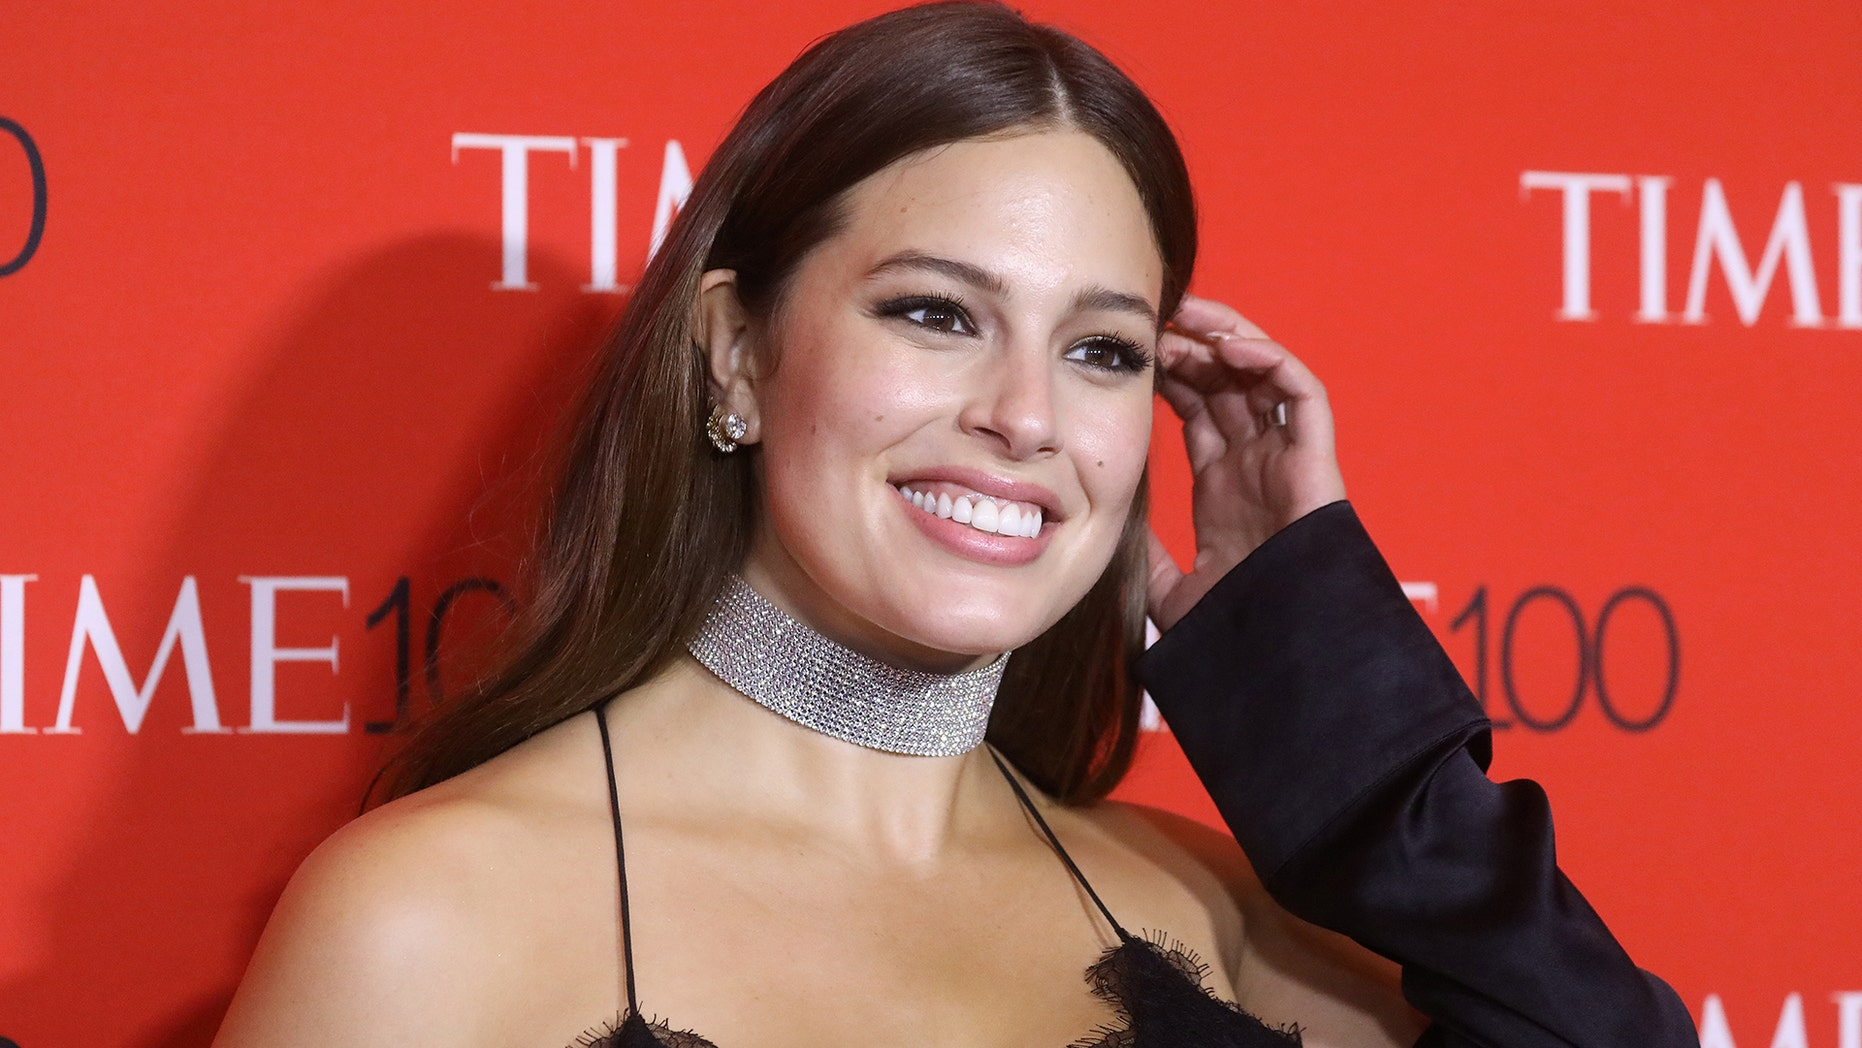 Model Ashley Graham arrives for the Time 100 Gala in the Manhattan borough of New York, New York, U.S. April 25, 2017.